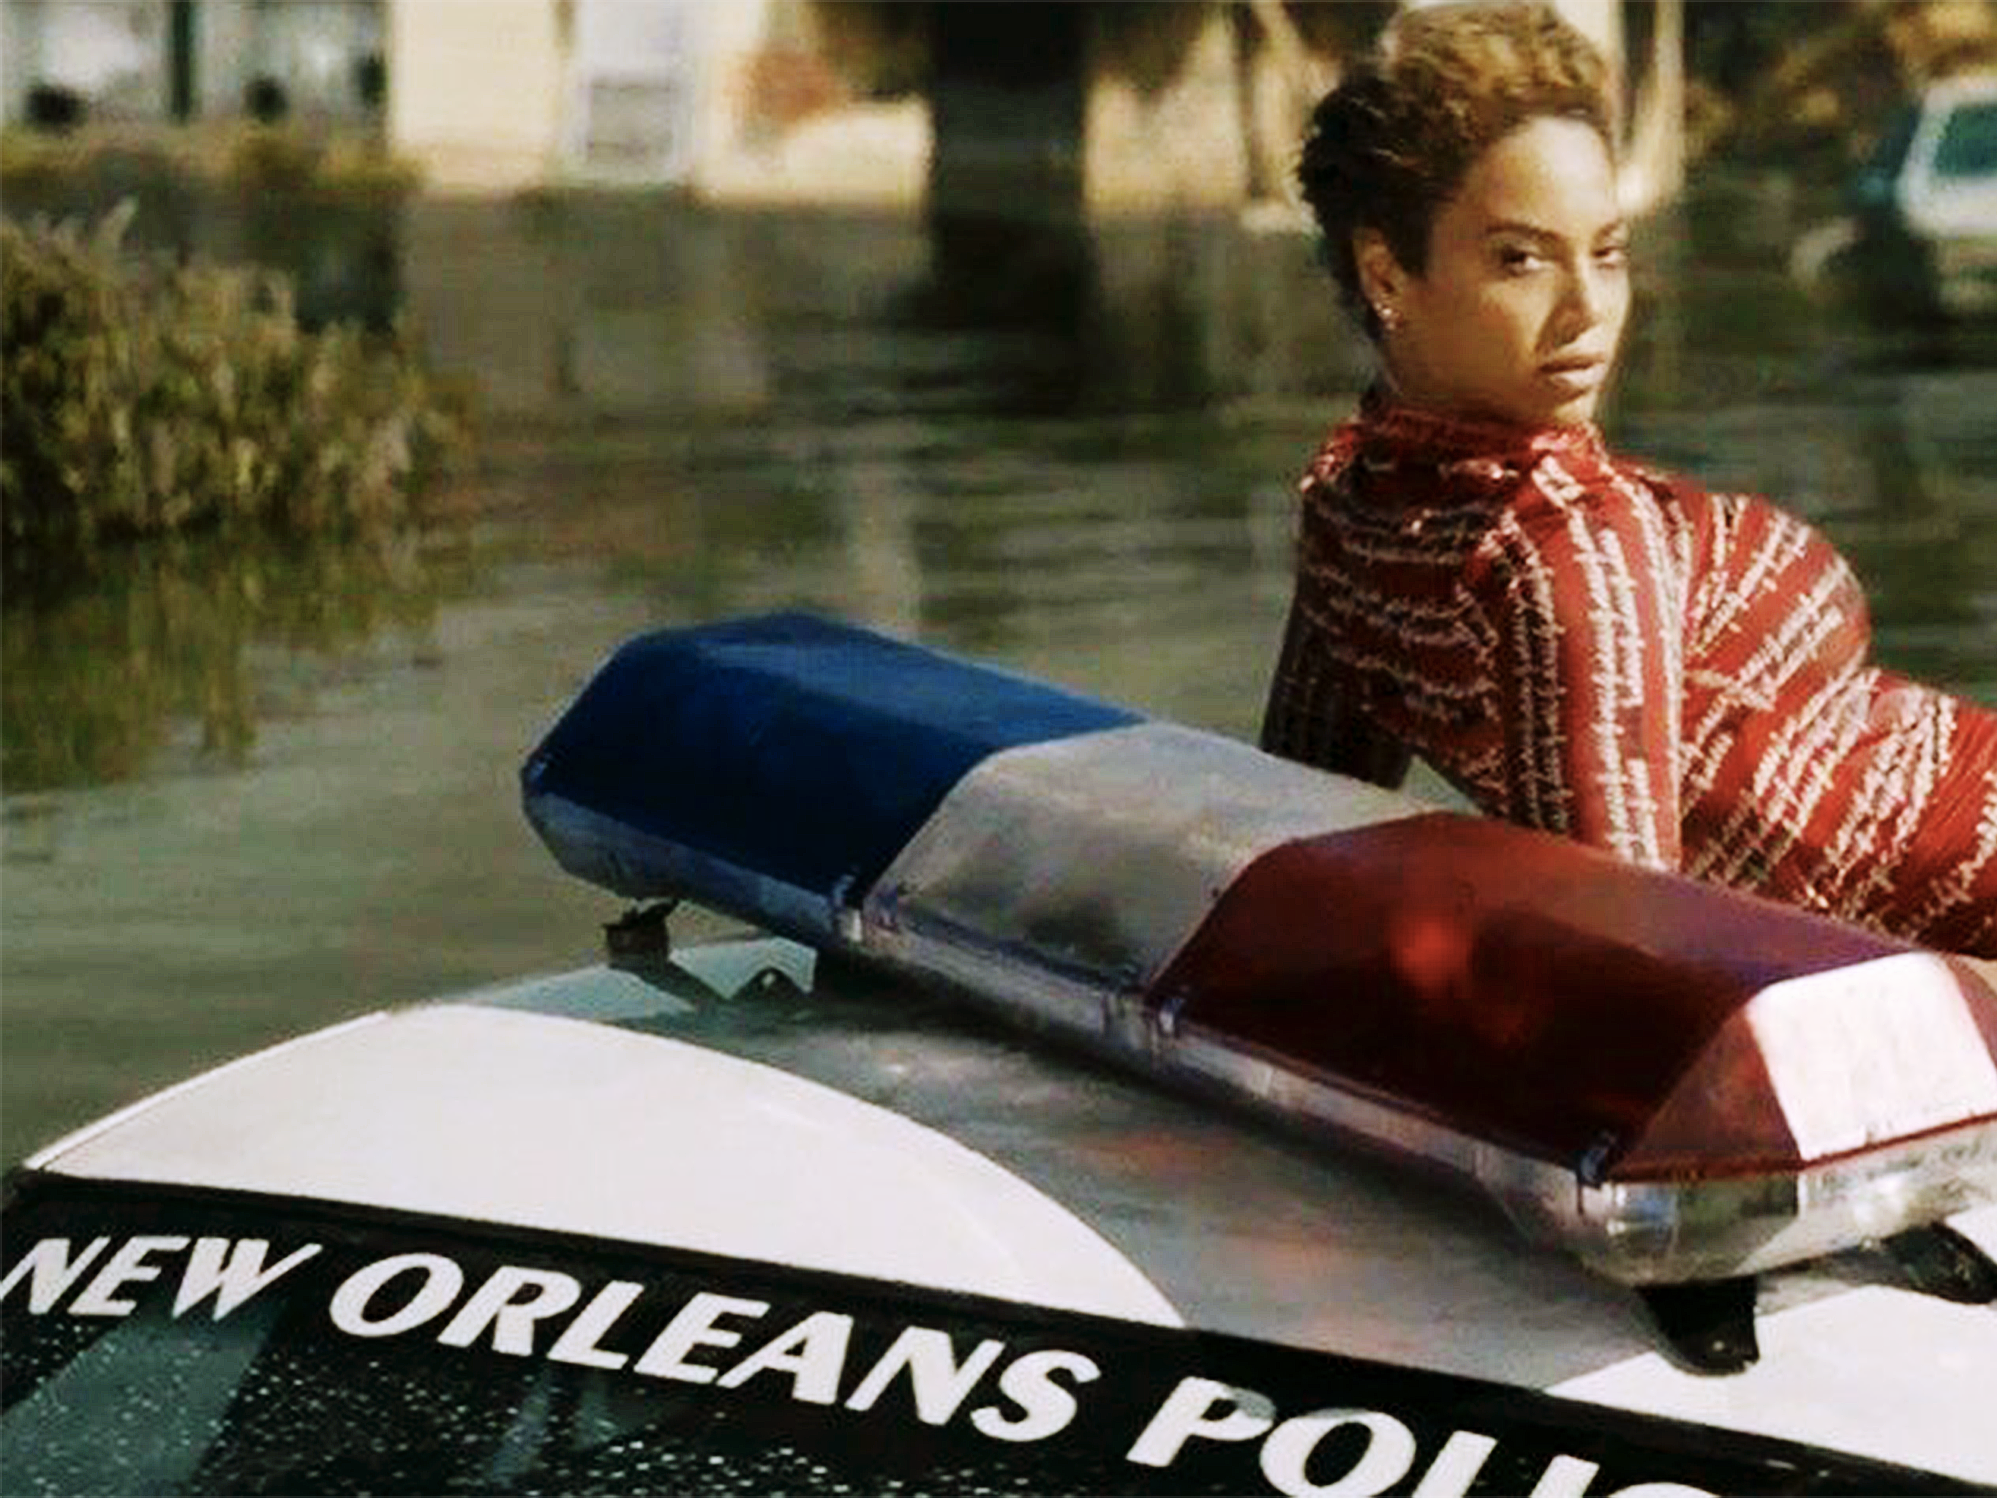 No, Beyoncé is not bashing the police: Here's what her new song 'Formation' is really saying